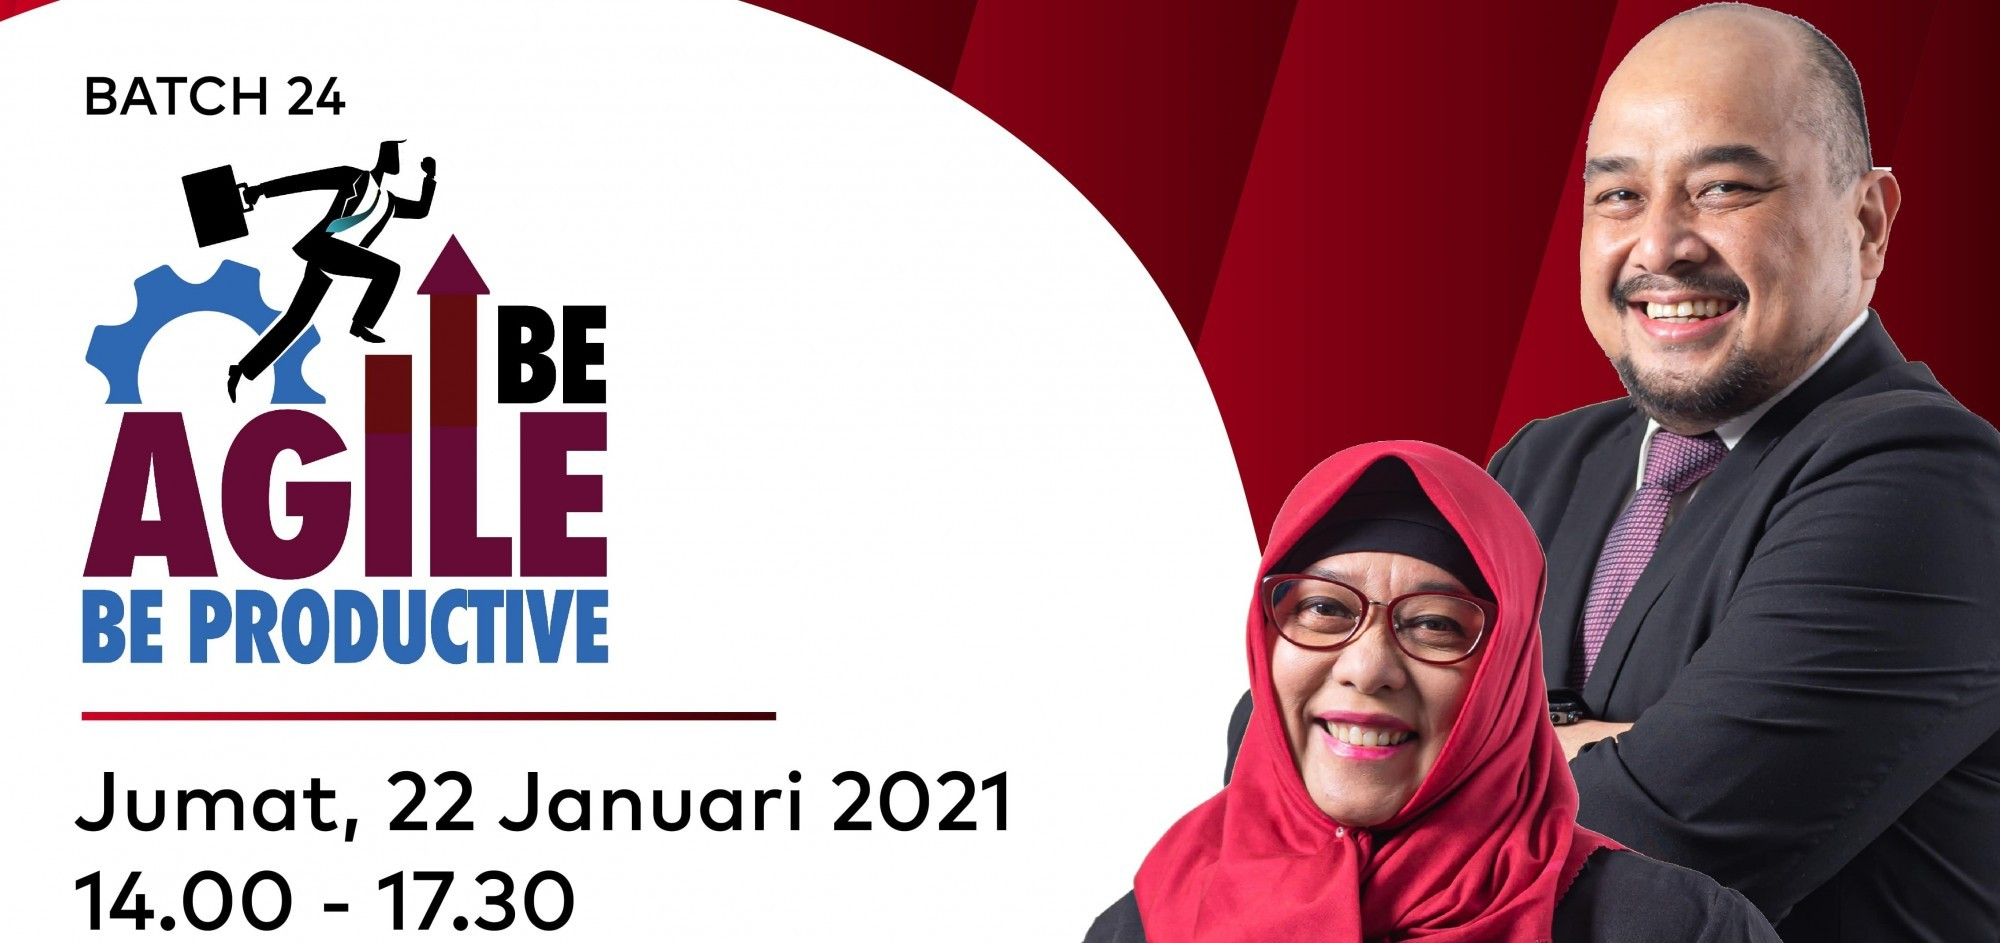 Be Agile Be Productive With Sugiarti Rosbak & Rudy Adrian Batch 24